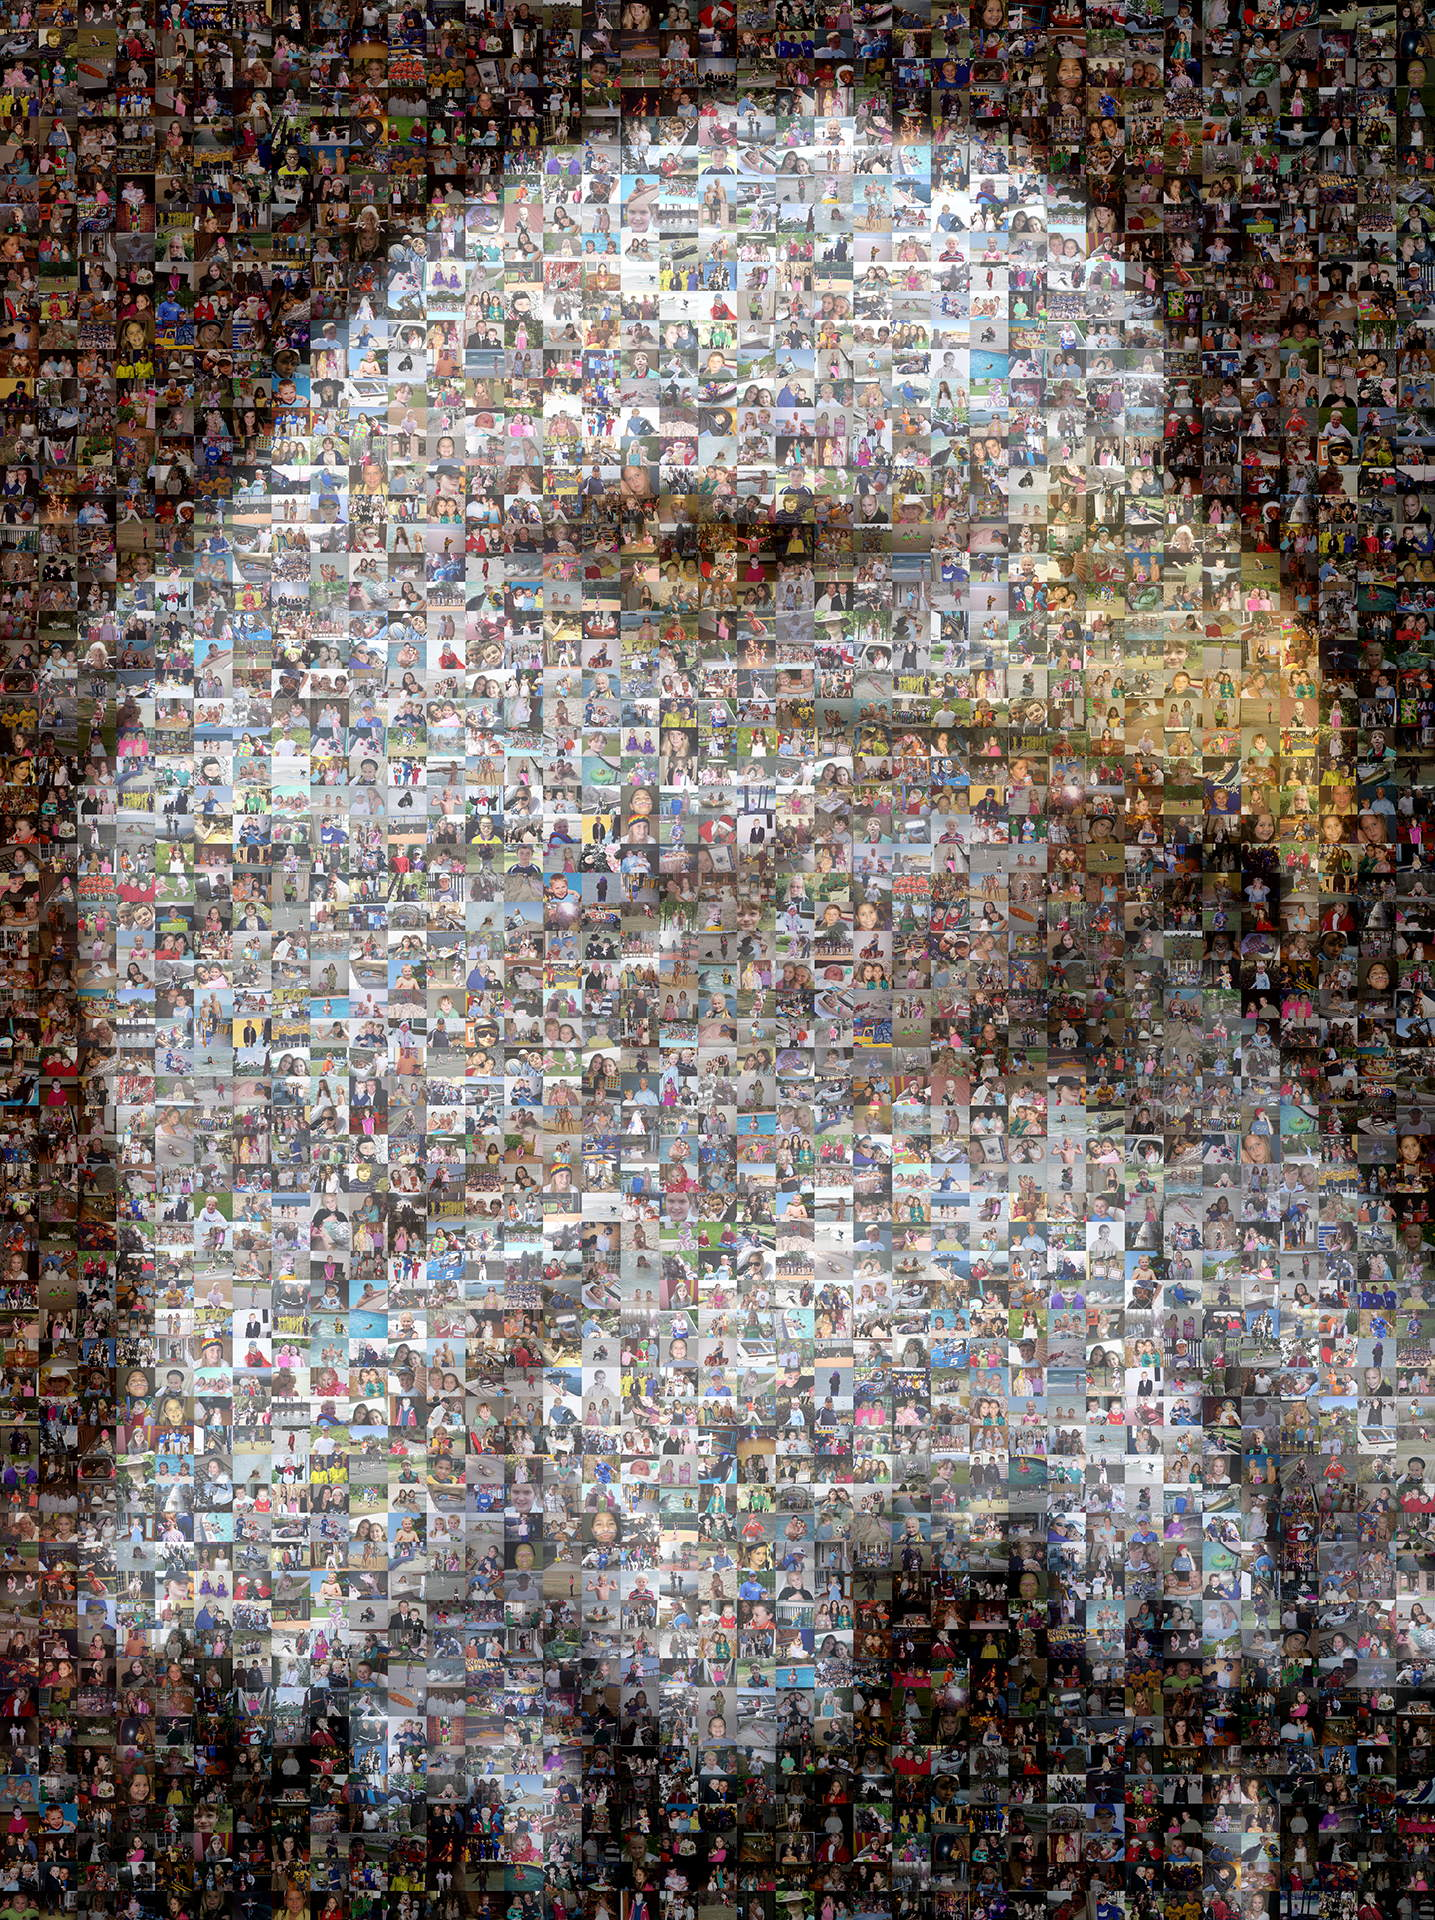 photo mosaic created using 877 family photos